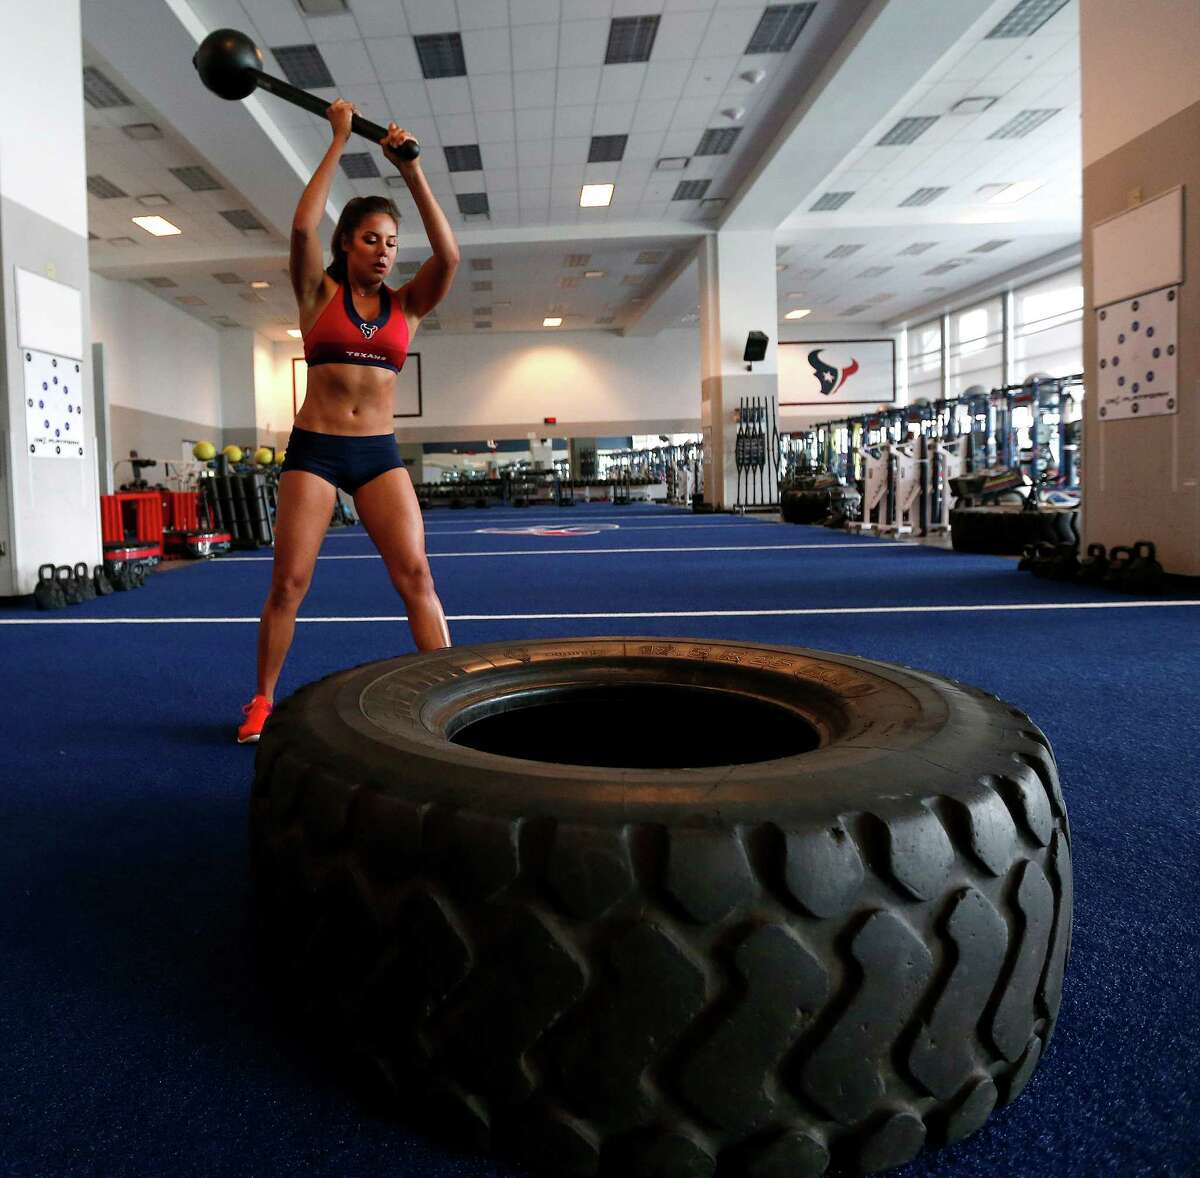 Madison works her upper body and core by hitting a truck tire with a sledge hammer while working out at the Texans weight room.